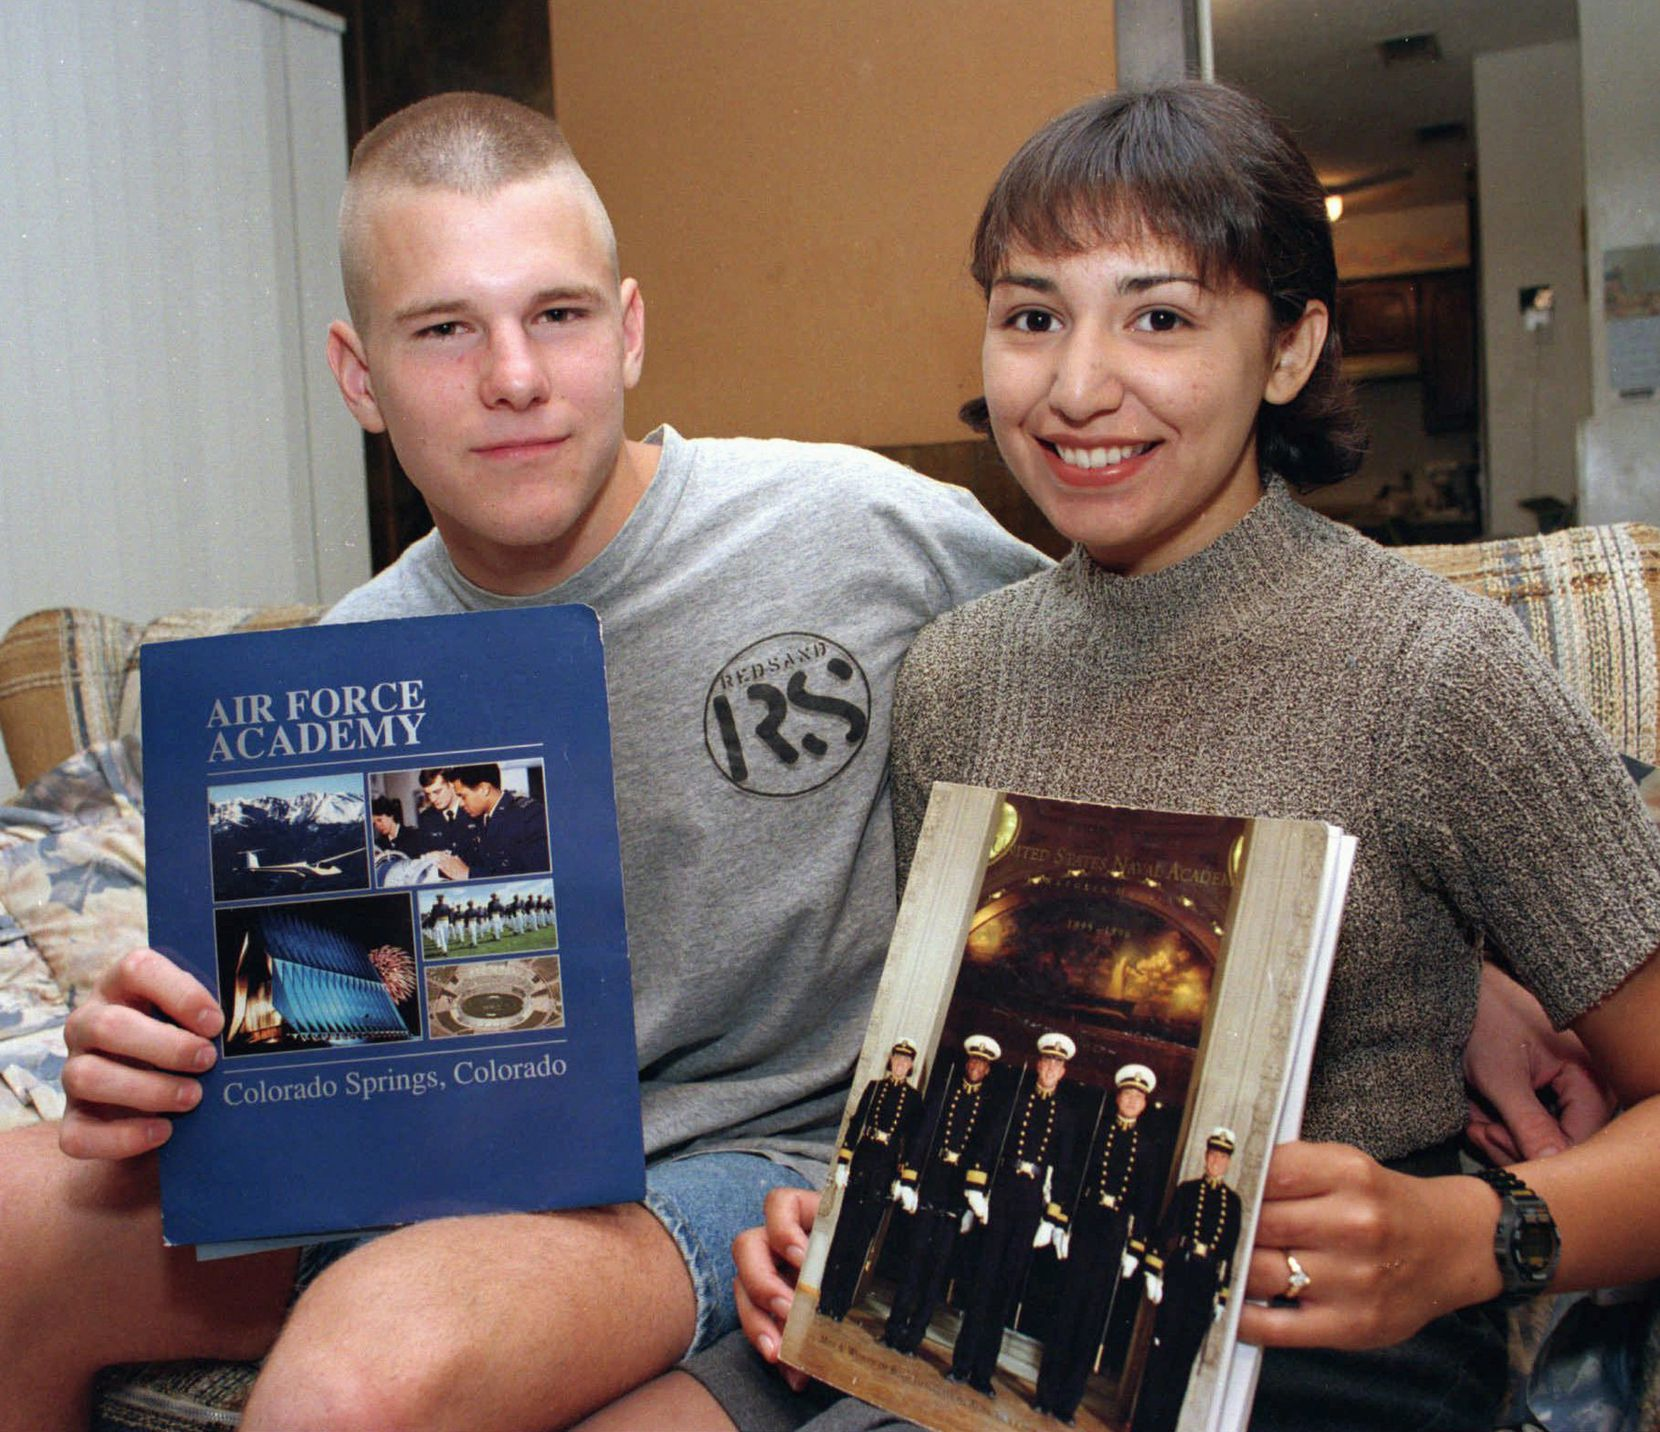 David Graham and then-fiance Diane Zamora posed for a news photographer for a story about their appointments to the U.S. Air Force and Naval academies. Zamora is now serving a life sentence for the 1995 murder of Adrianne Jones, a classmate with whom Graham had an affair. Graham was also convicted in Jones' death.